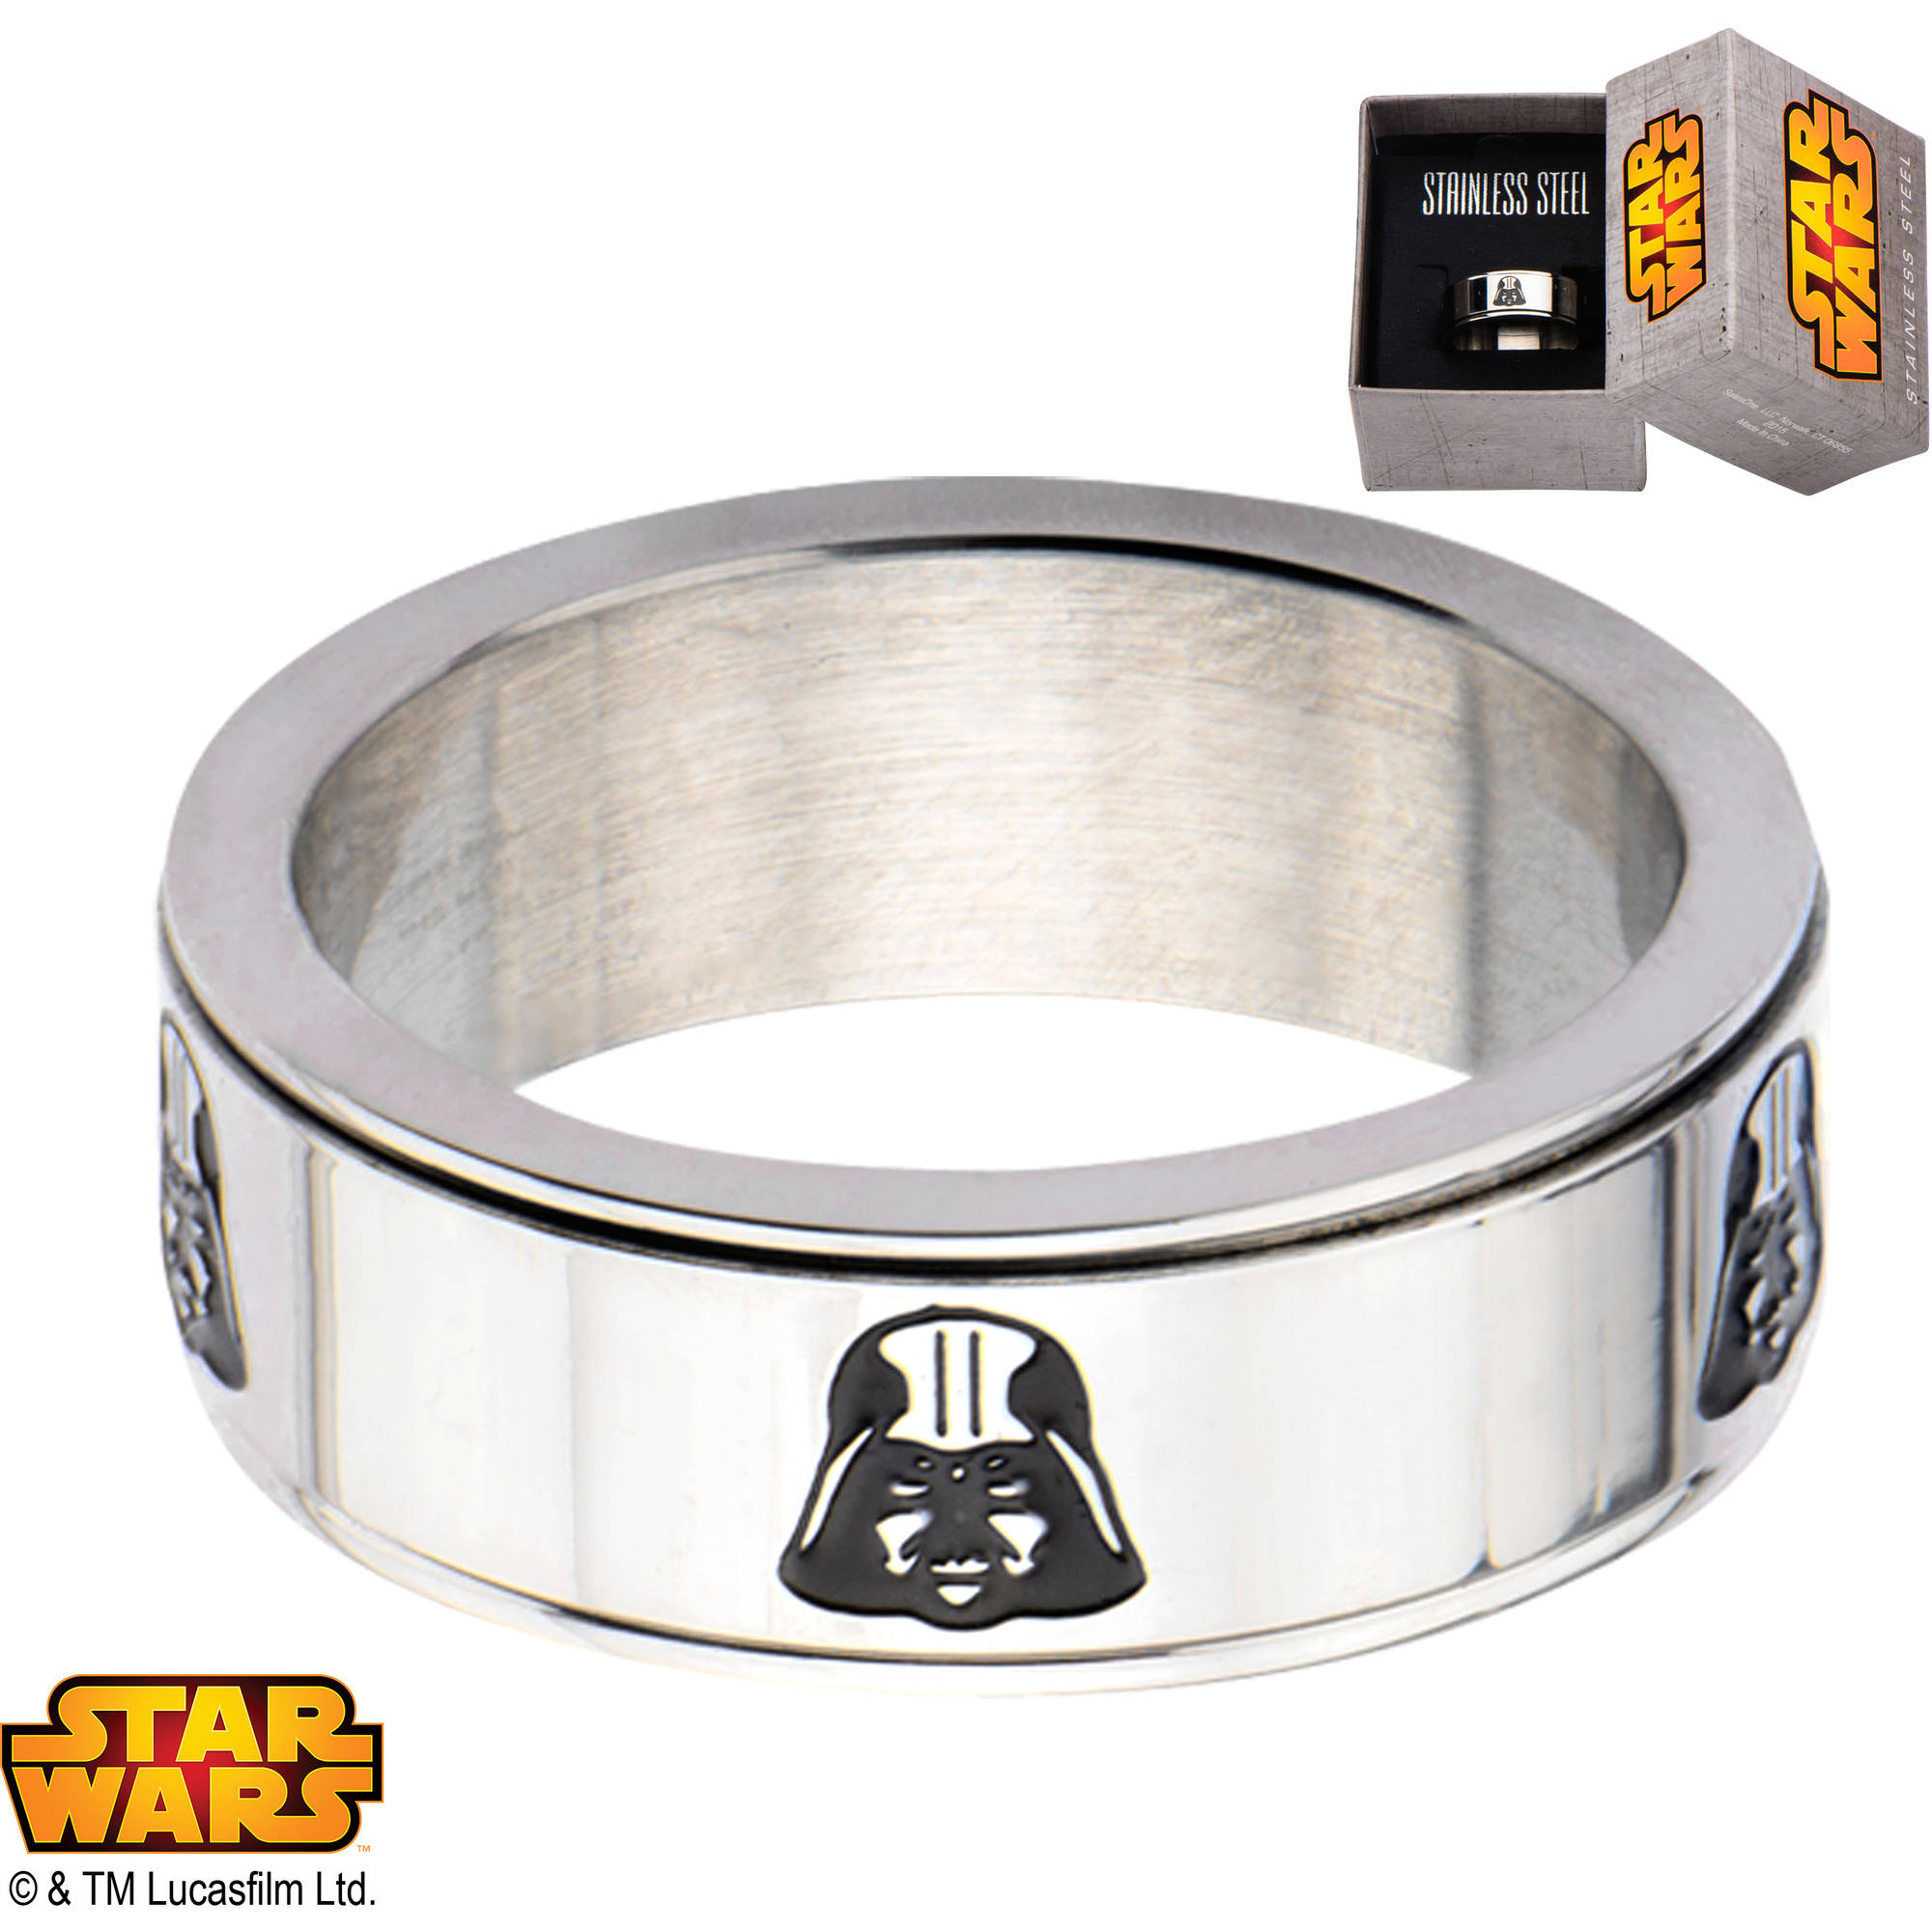 Disney Star Wars Men's Stainless Steel Darth Vader Spinner Ring, Sizes 8-12